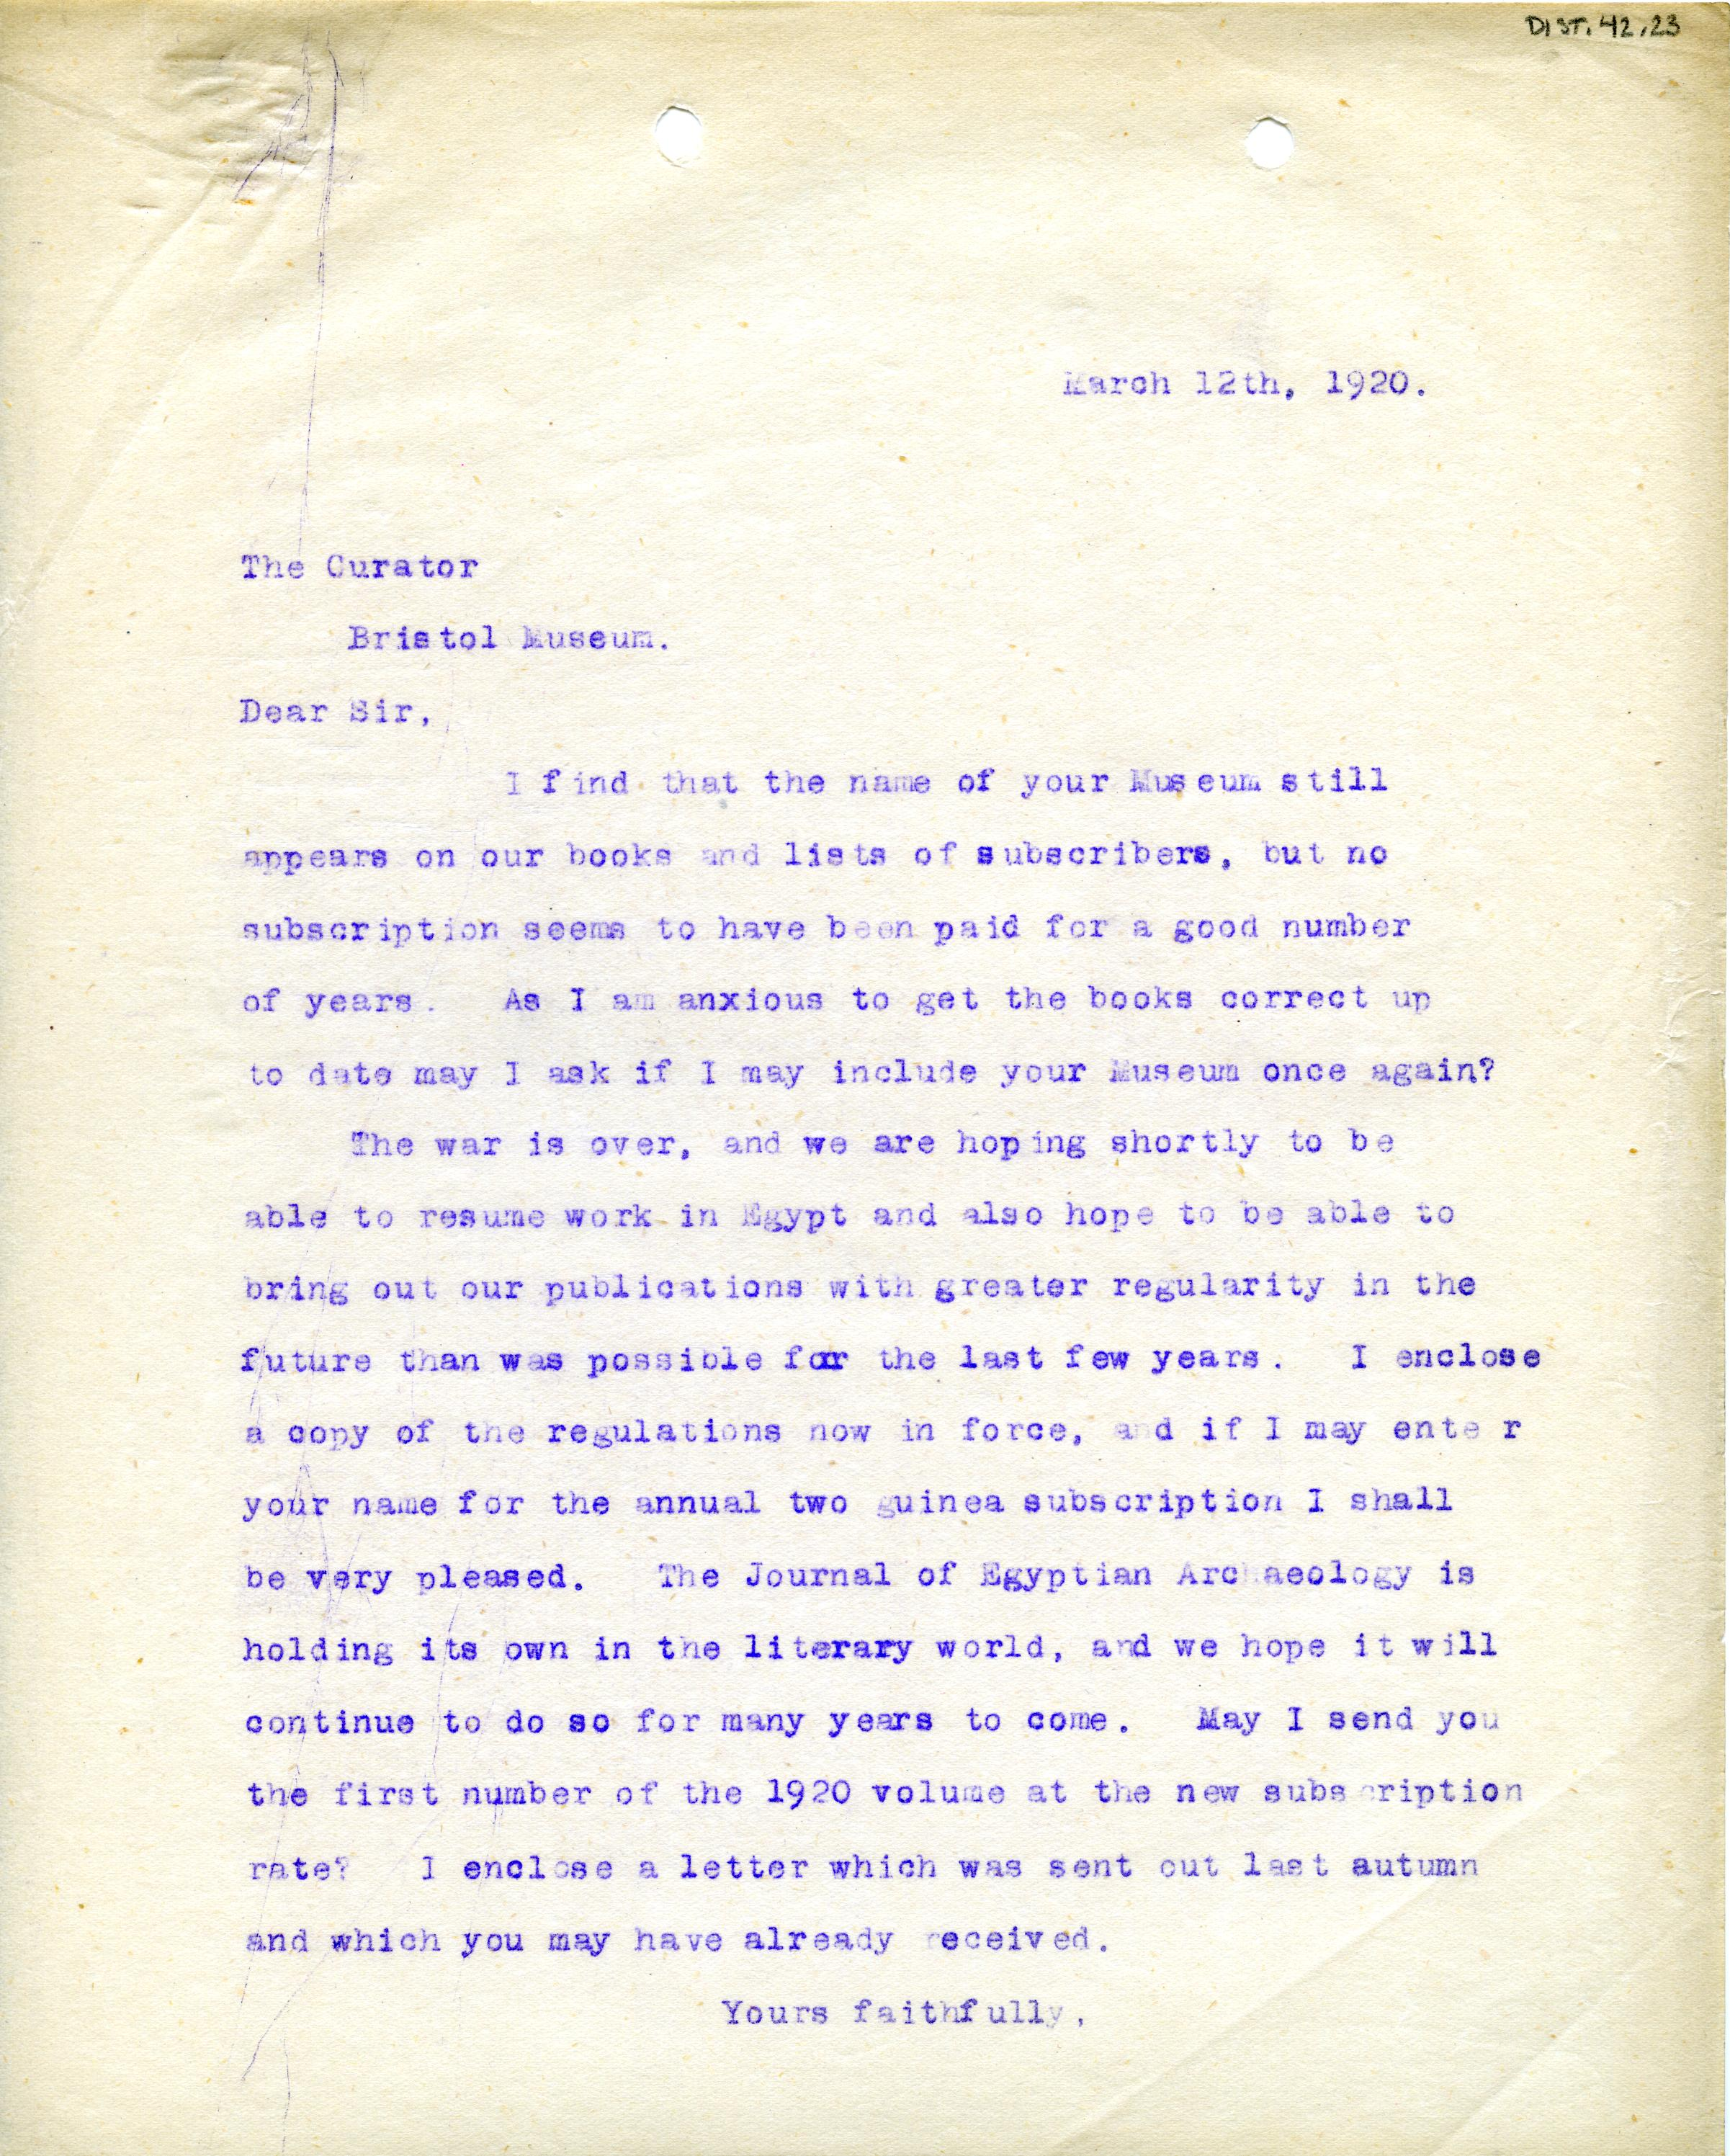 1922-71 Miscellaneous correspondence with museums DIST.42.23